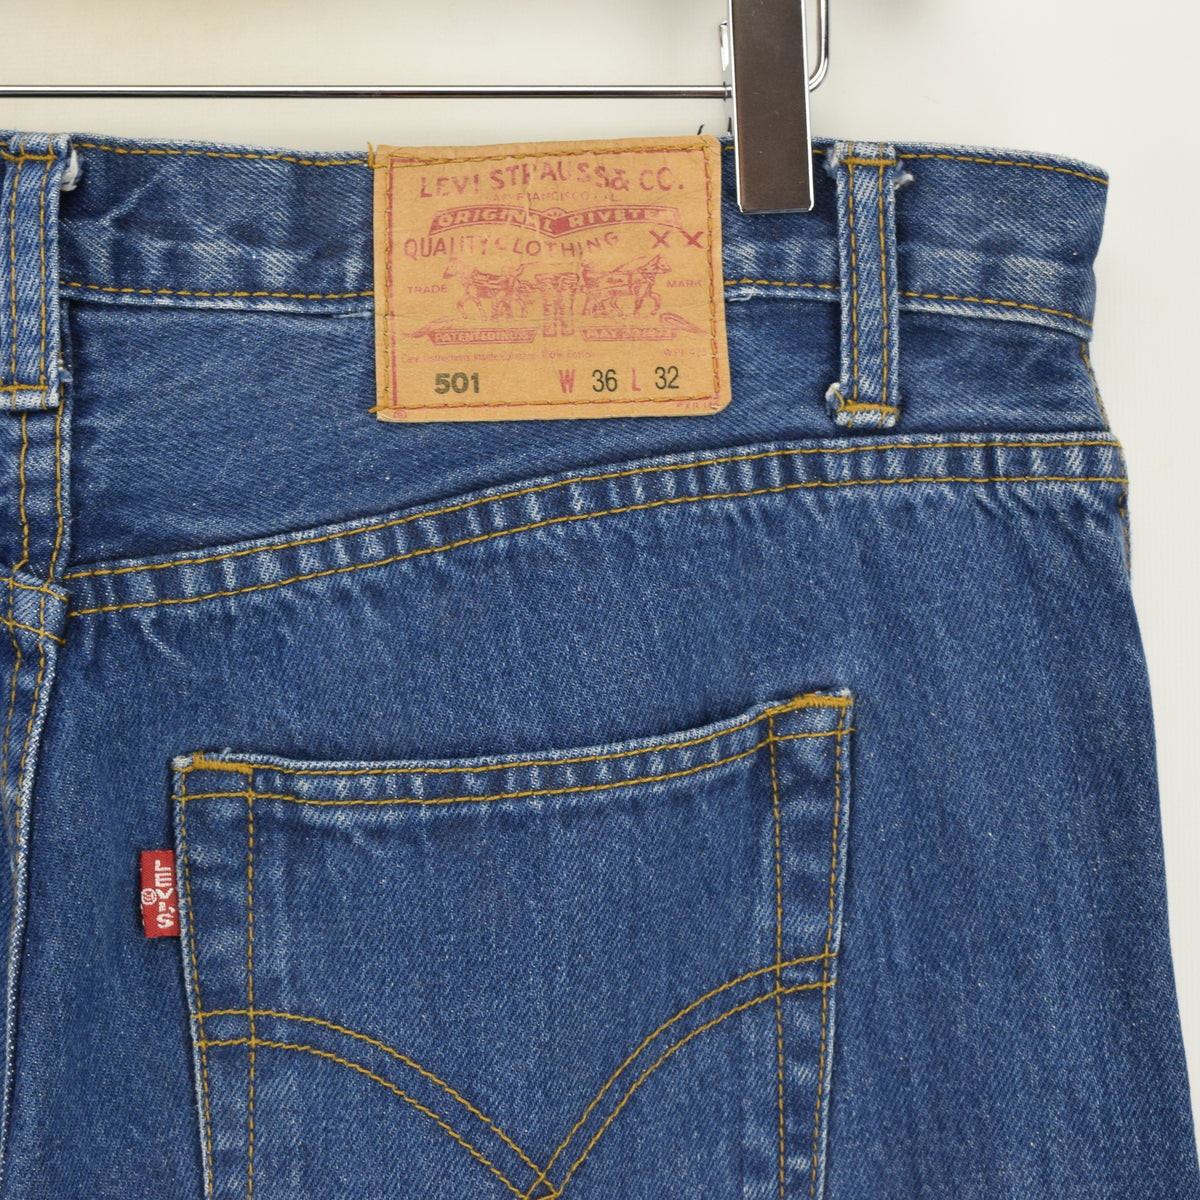 Vintage Levi Cowboy Red Tab Big E Stonewash Blue Denim Jeans Pant 34 W 26 L back waist pocket